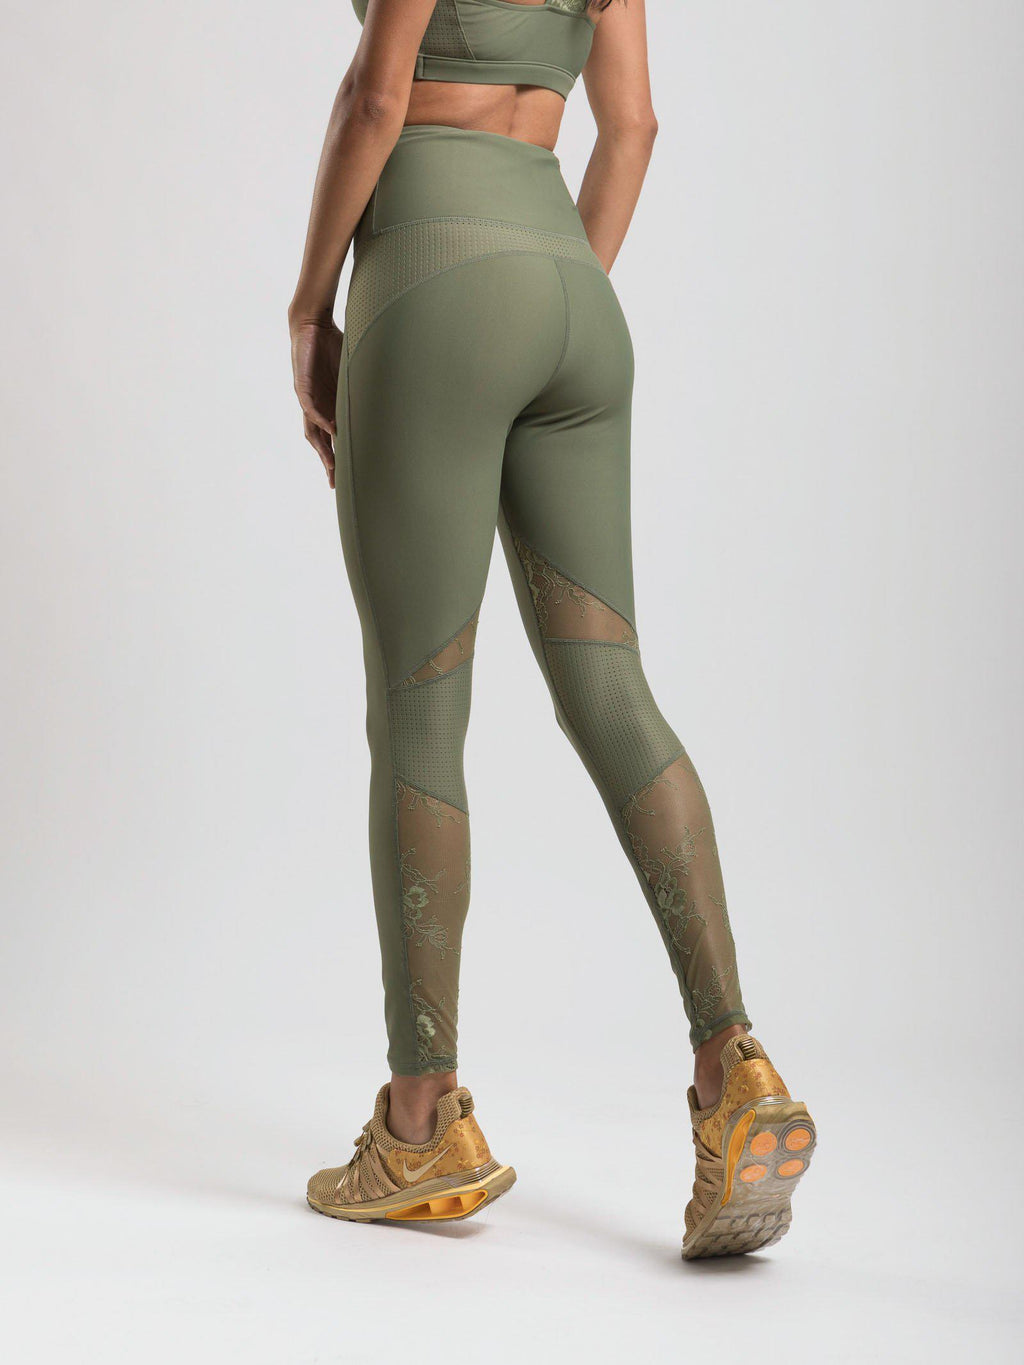 Lavish Legging